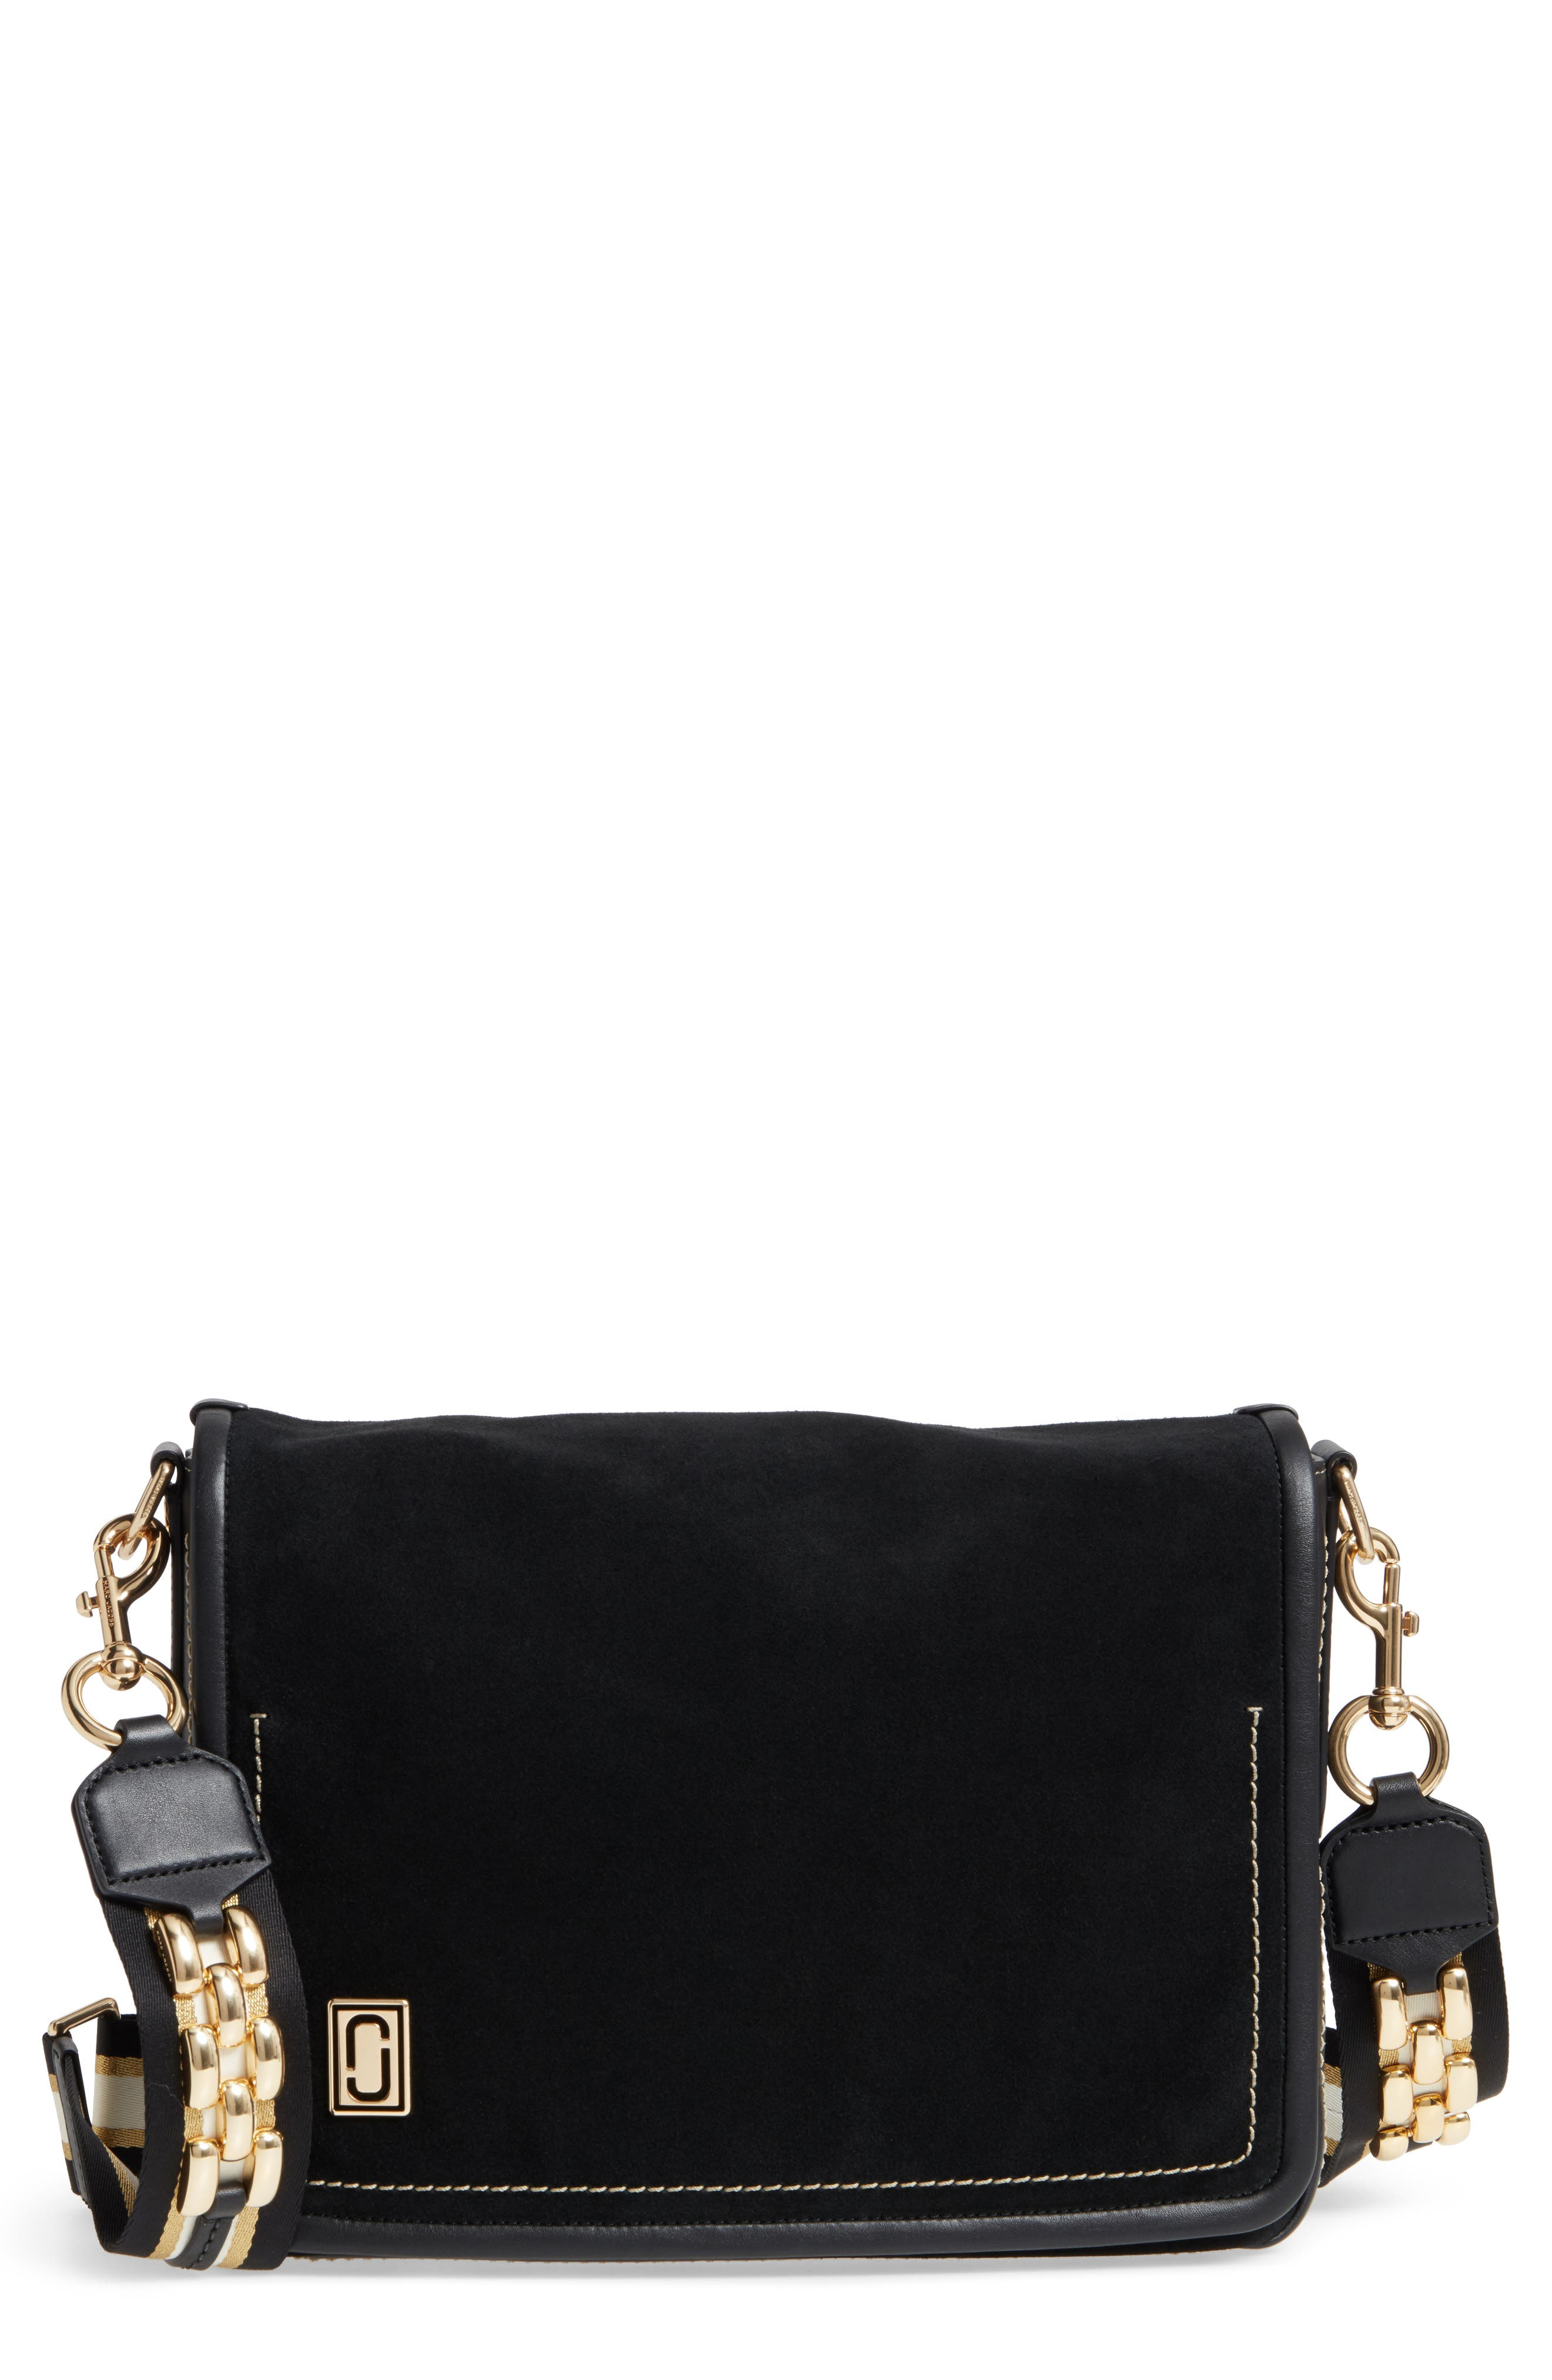 Alternate Image 1 Selected - MARC JACOBS The Squeeze Suede Shoulder Bag